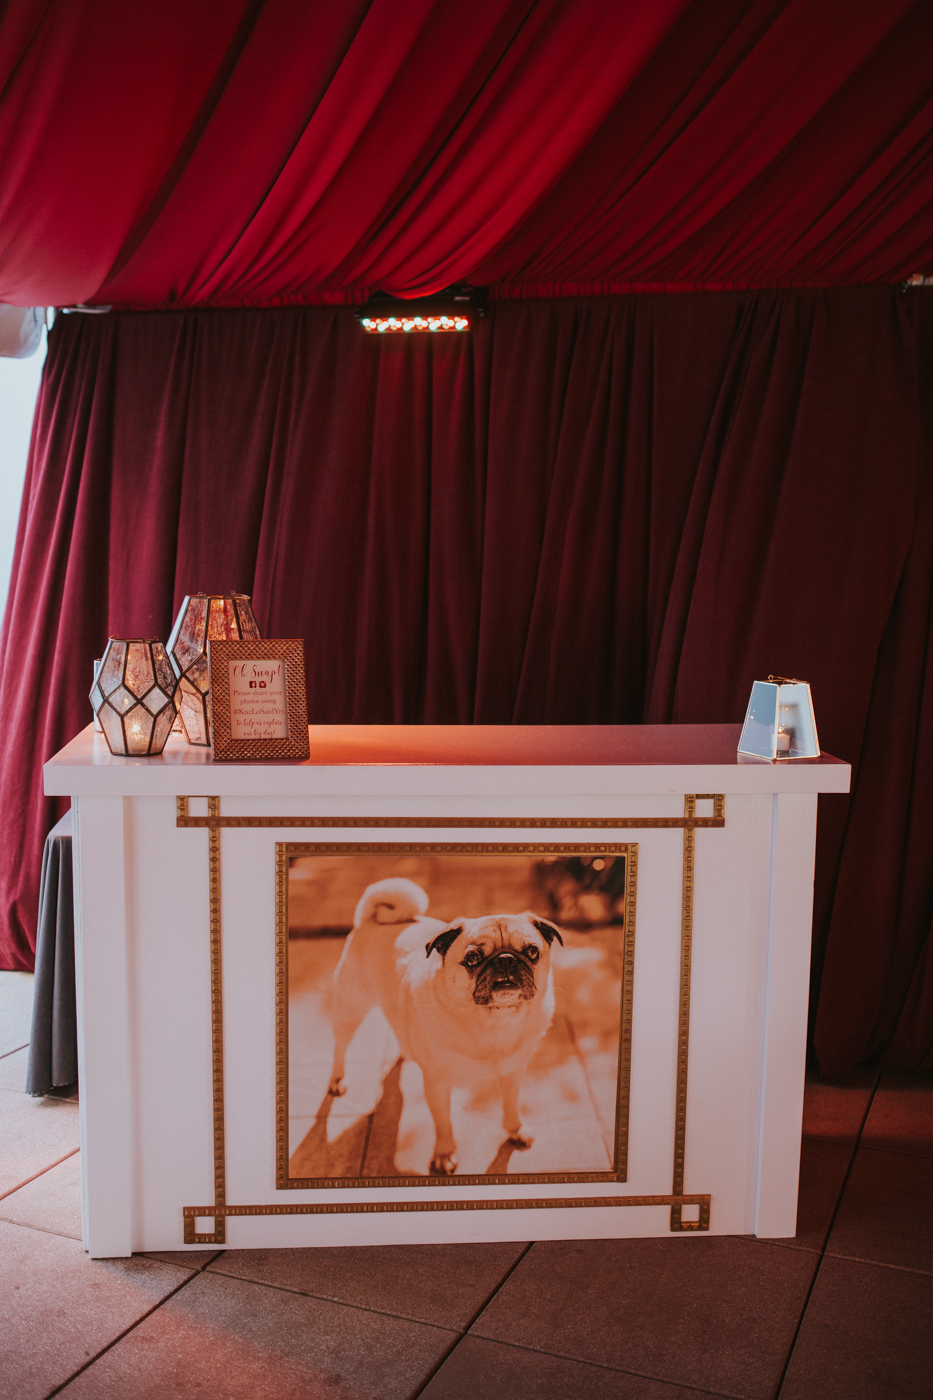 Photo of dog on wedding bar at cocktail hour